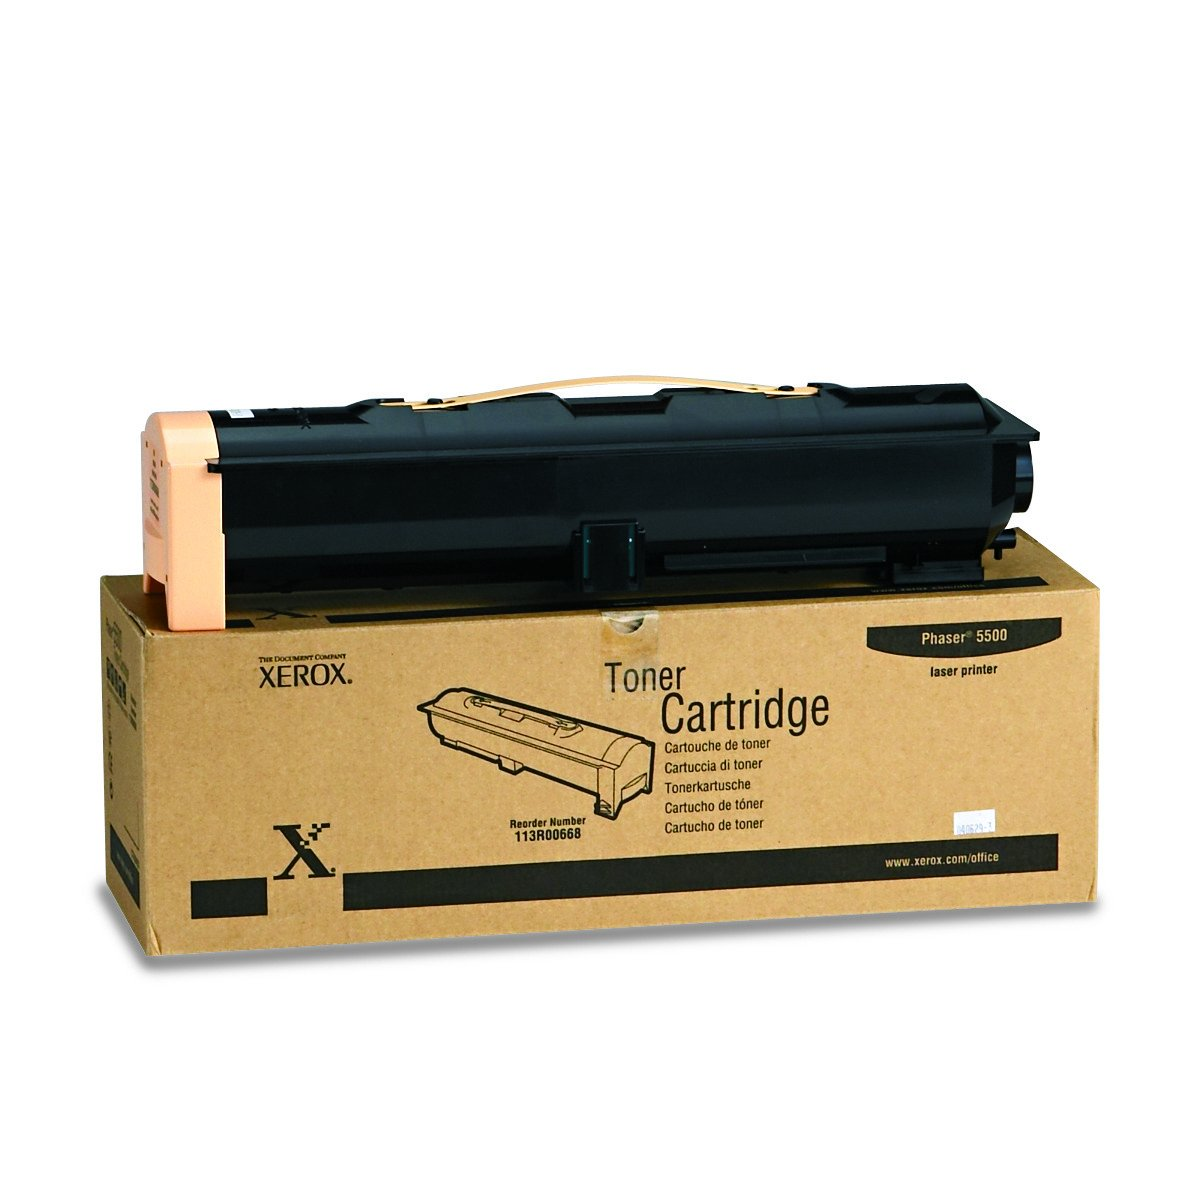 Genuine Xerox Black Toner Cartridge for the Phaser 5500, 113R00668